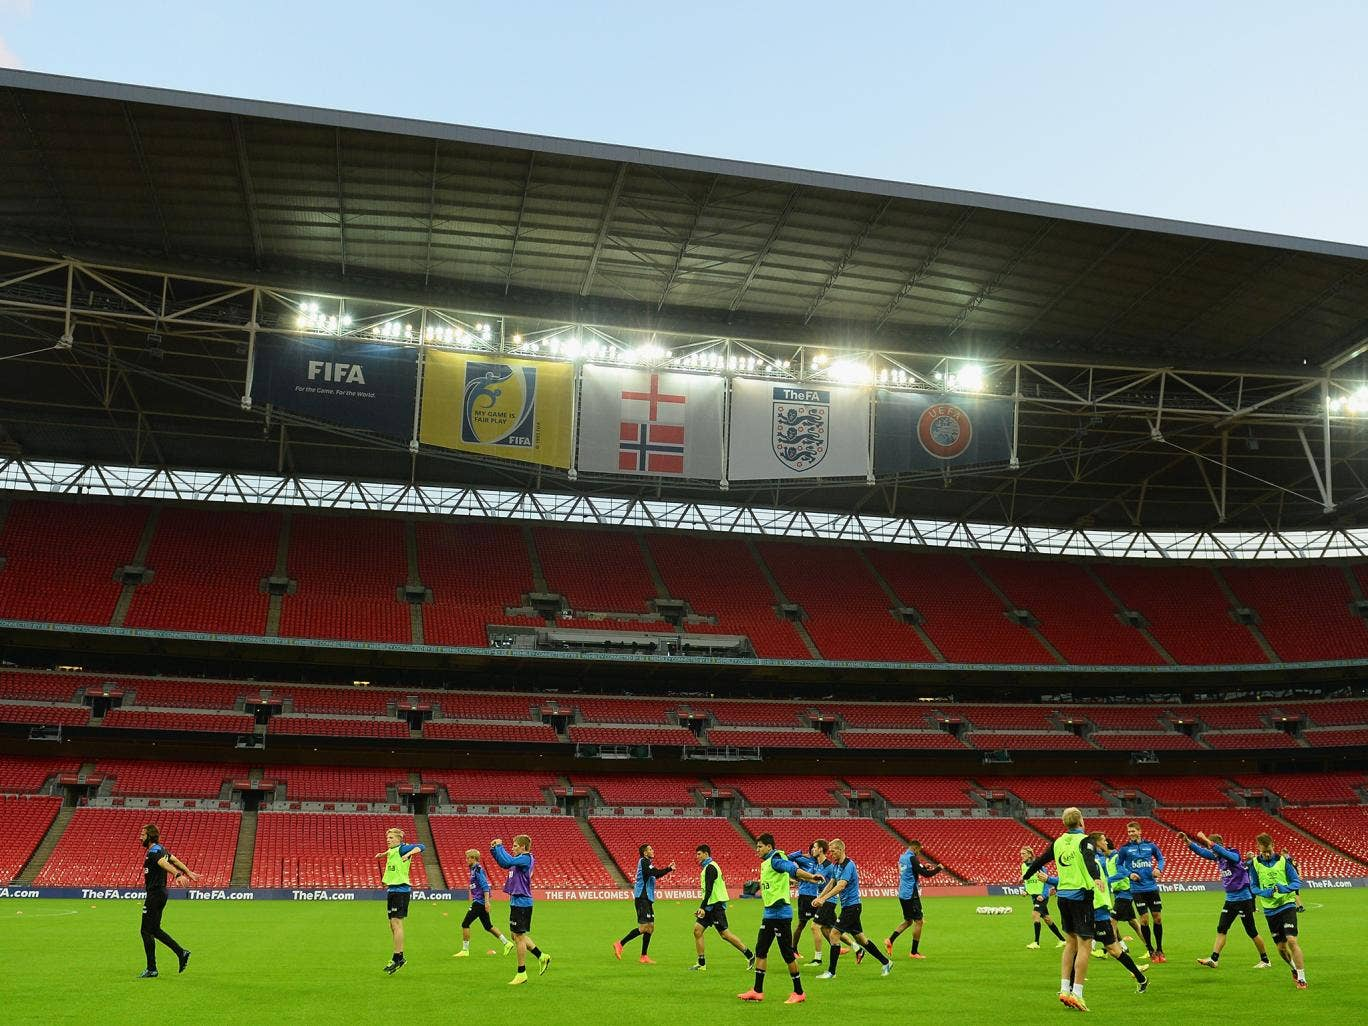 A view of Wembley Stadium prior to England vs Norway